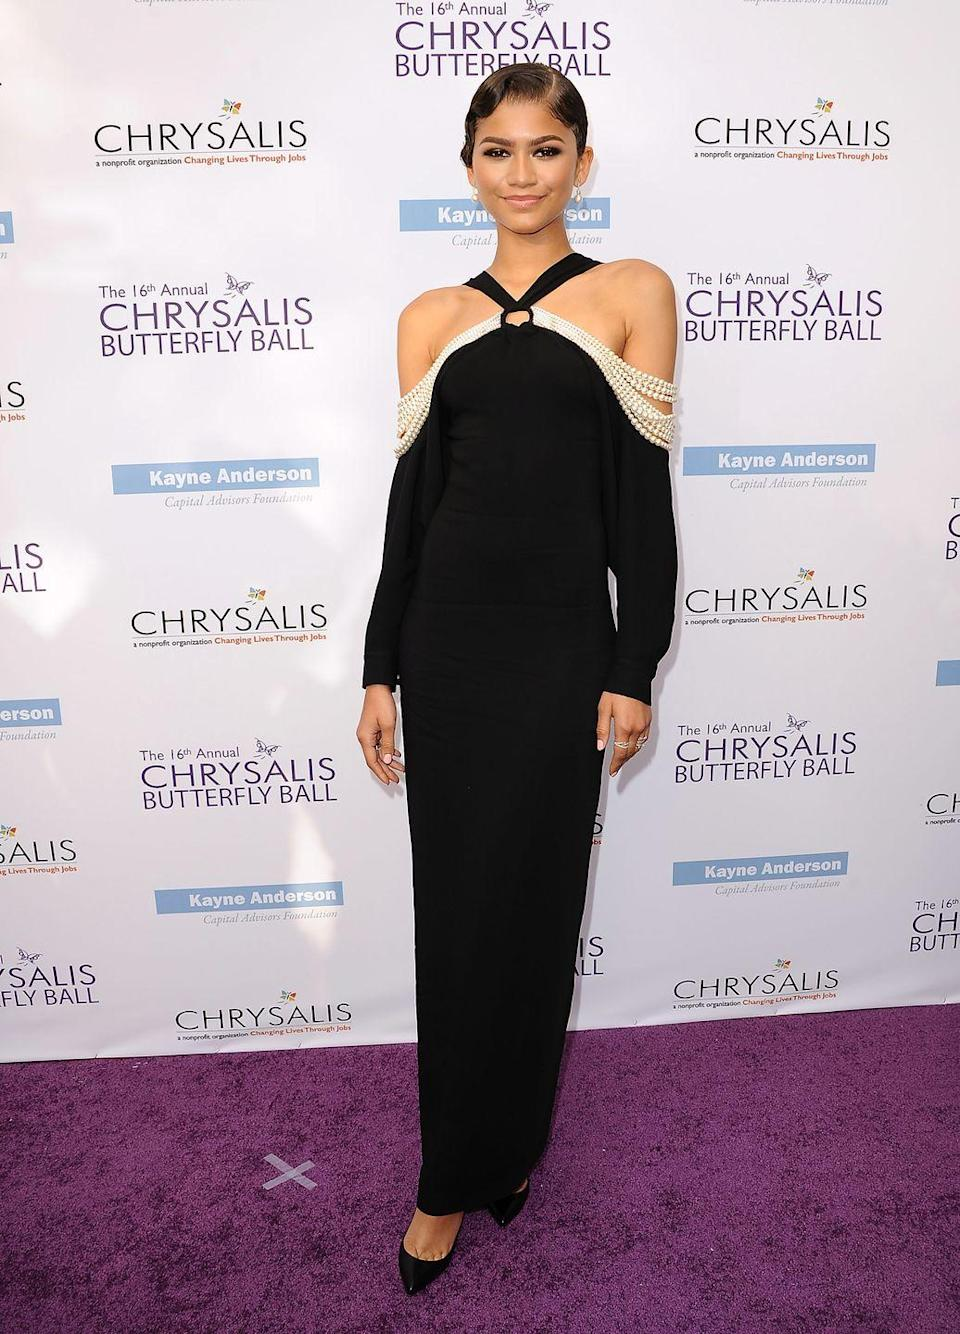 <p>At the 2017 Chrysalis Butterfly Ball, this pearly black dress served us with some chic Golden Age vibes with the luxe neckline. </p>